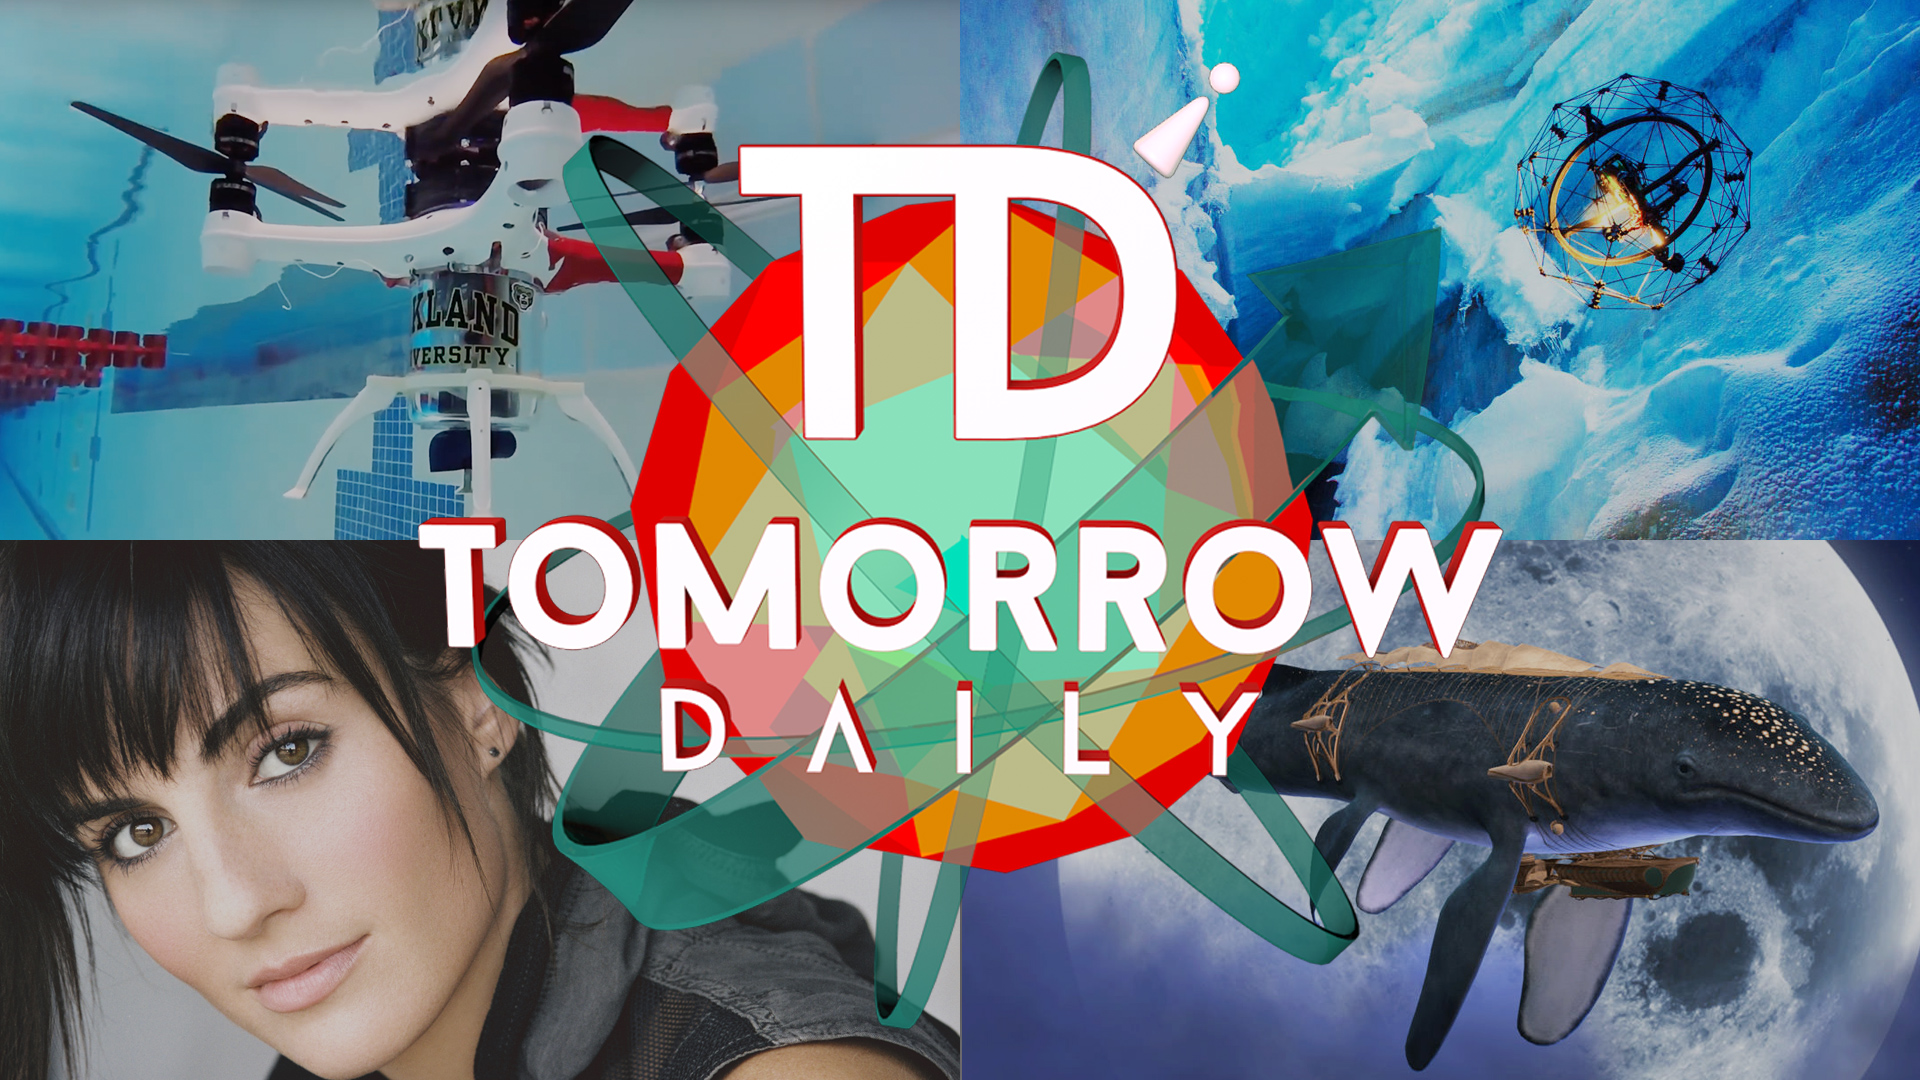 Video: Alison Haislip on video games, escape rooms and Elon Musk (Tomorrow Daily 306)